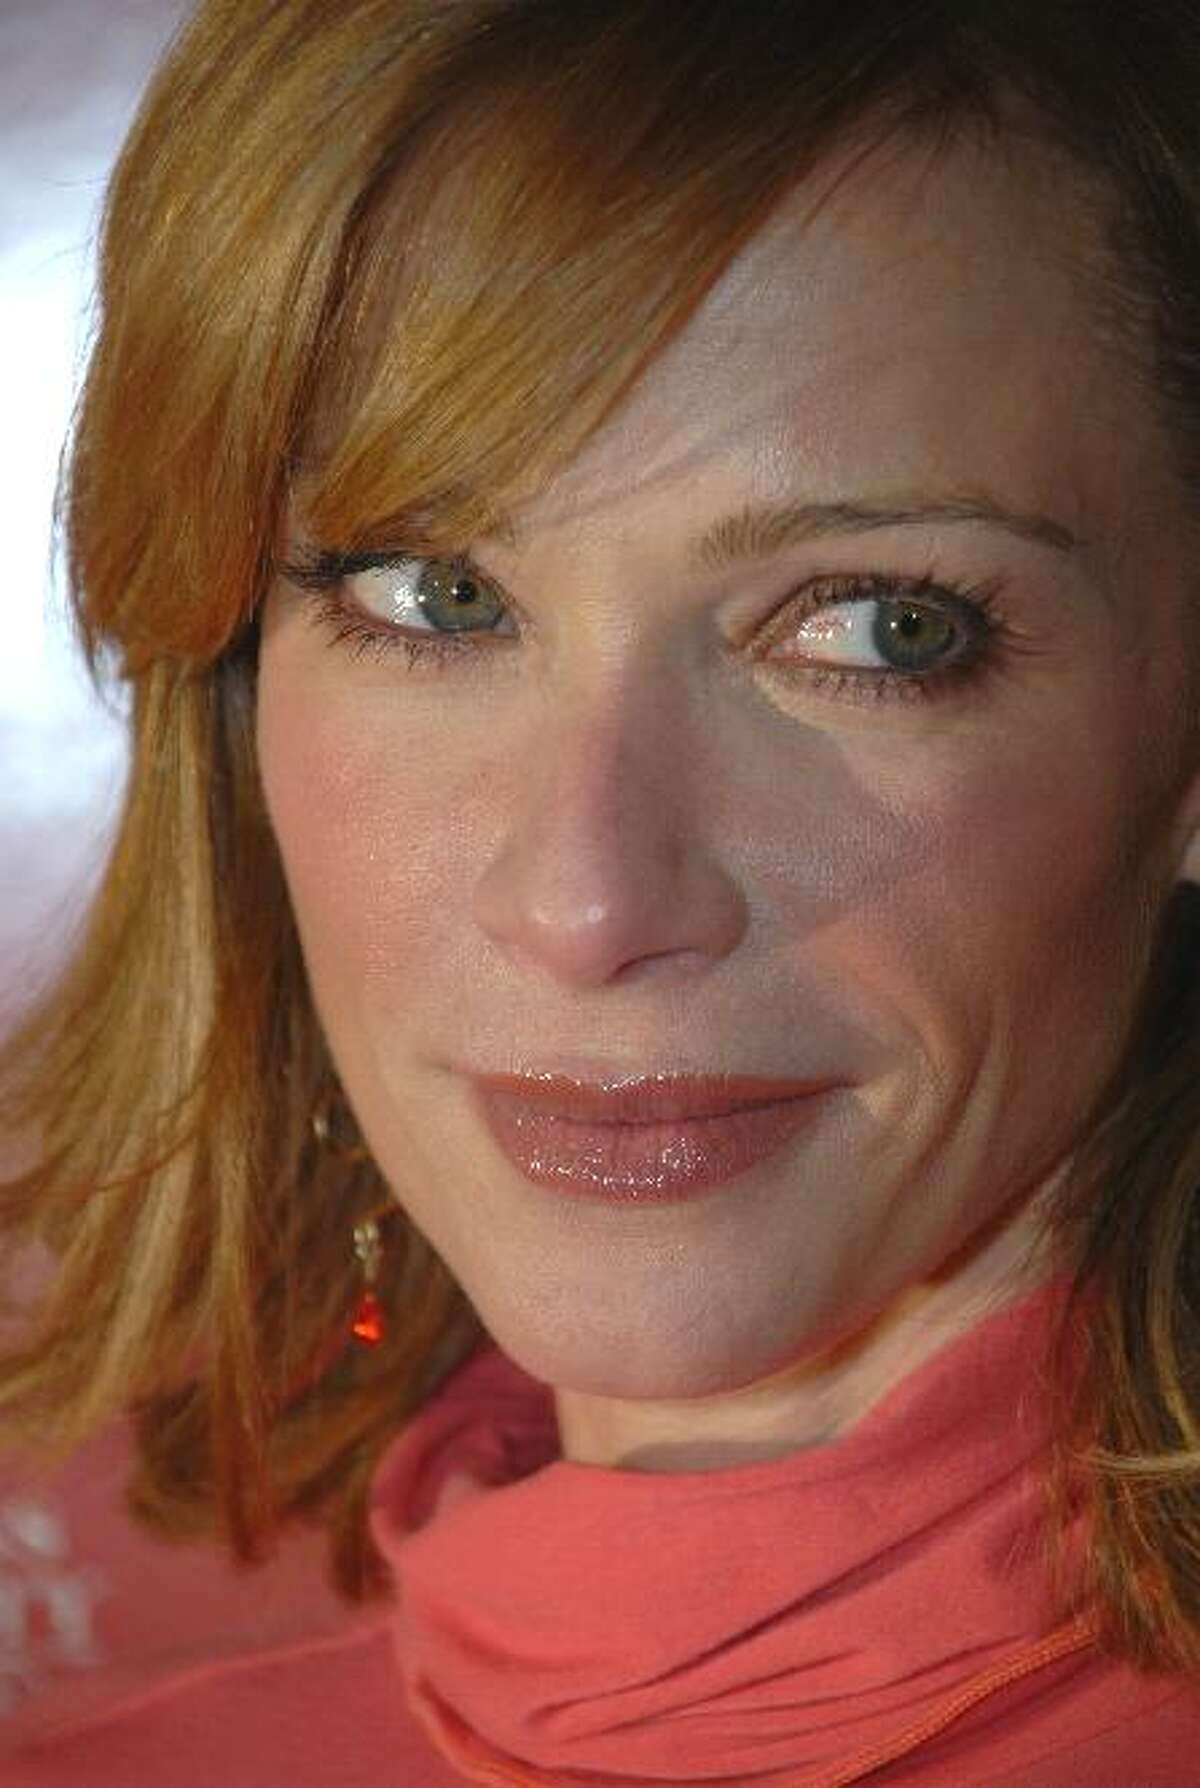 """Lauren Holly:She'll always be known as Mary Swanson from """"Dumb and Dumber,"""" but Lauren Holly has many other credits to her name, too. Other credits include popular films like """"Down Periscope"""" and """"What Women Want."""" Holly's connection to the River Bend comes via her mother, Michael Ann Holly, who was born in Alton. Michael Ann Holly is famous in her own right as an art historian."""